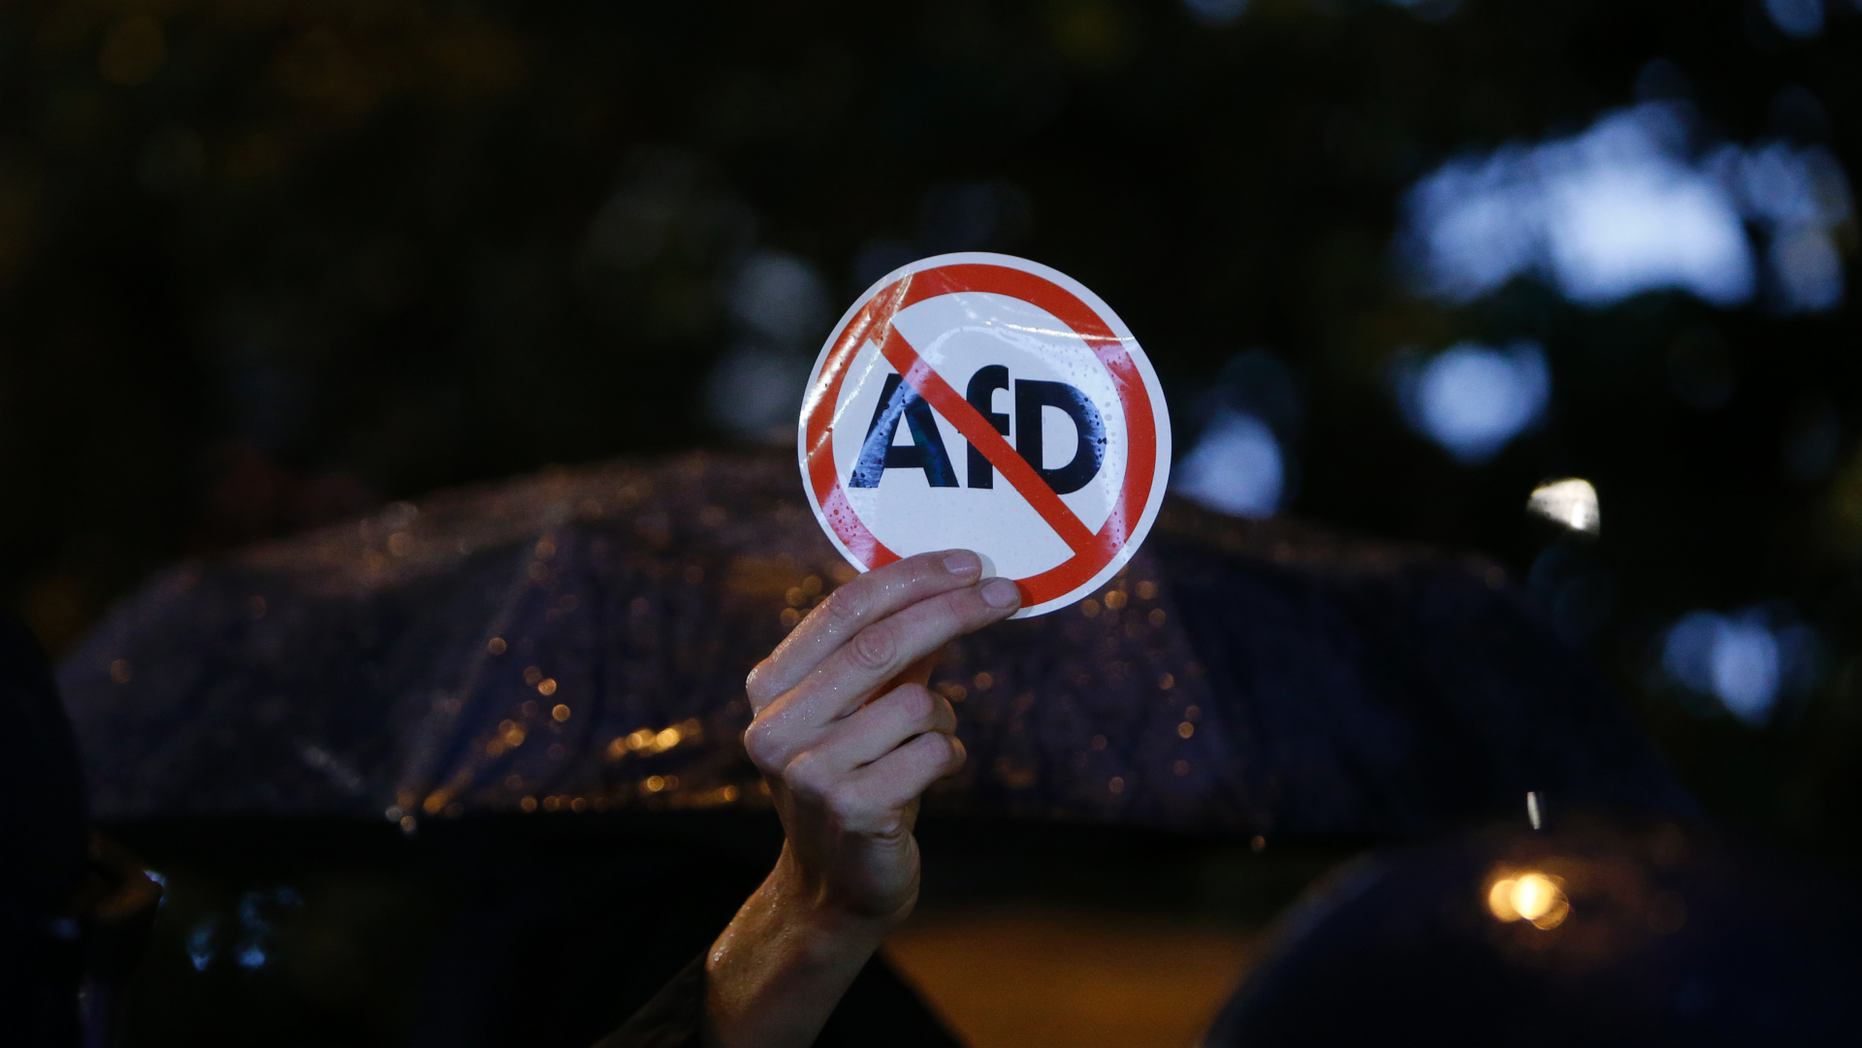 """FILE- In this Sept. 24, 2017 file photo police blocks demonstrators protesting against the nationalist 'Alternative for Germany', AfD, party in Berlin, Germany. A Jewish student group says it will protest the far-right Alternative for Germany's plans to found a Jewish section within party. Jewish Students Union of Germany leader Dalia Grinfeld said Wednesday the party, known as AfD, """"isn't getting a kosher certificate from us"""" because it is one of the biggest threats to Jewish life in Germany. (AP Photo/Michael Probst)"""